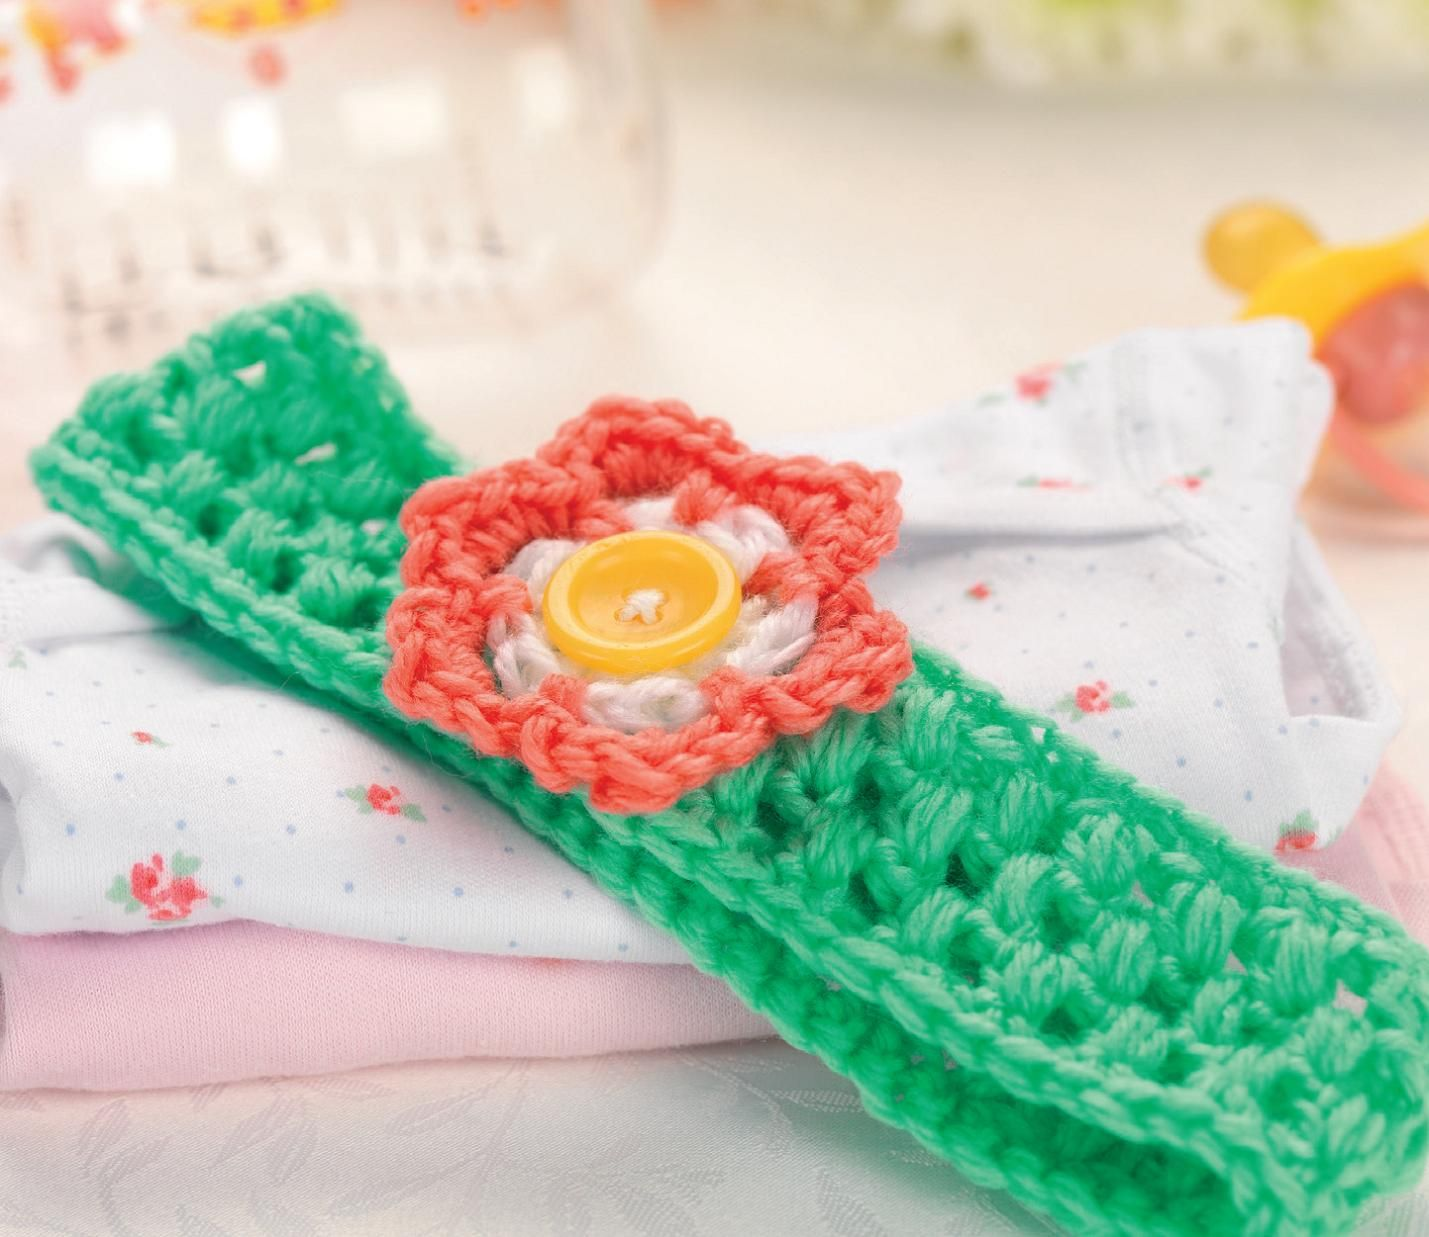 Crochet flower baby headband | Crochet! | Pinterest | Crochet ...